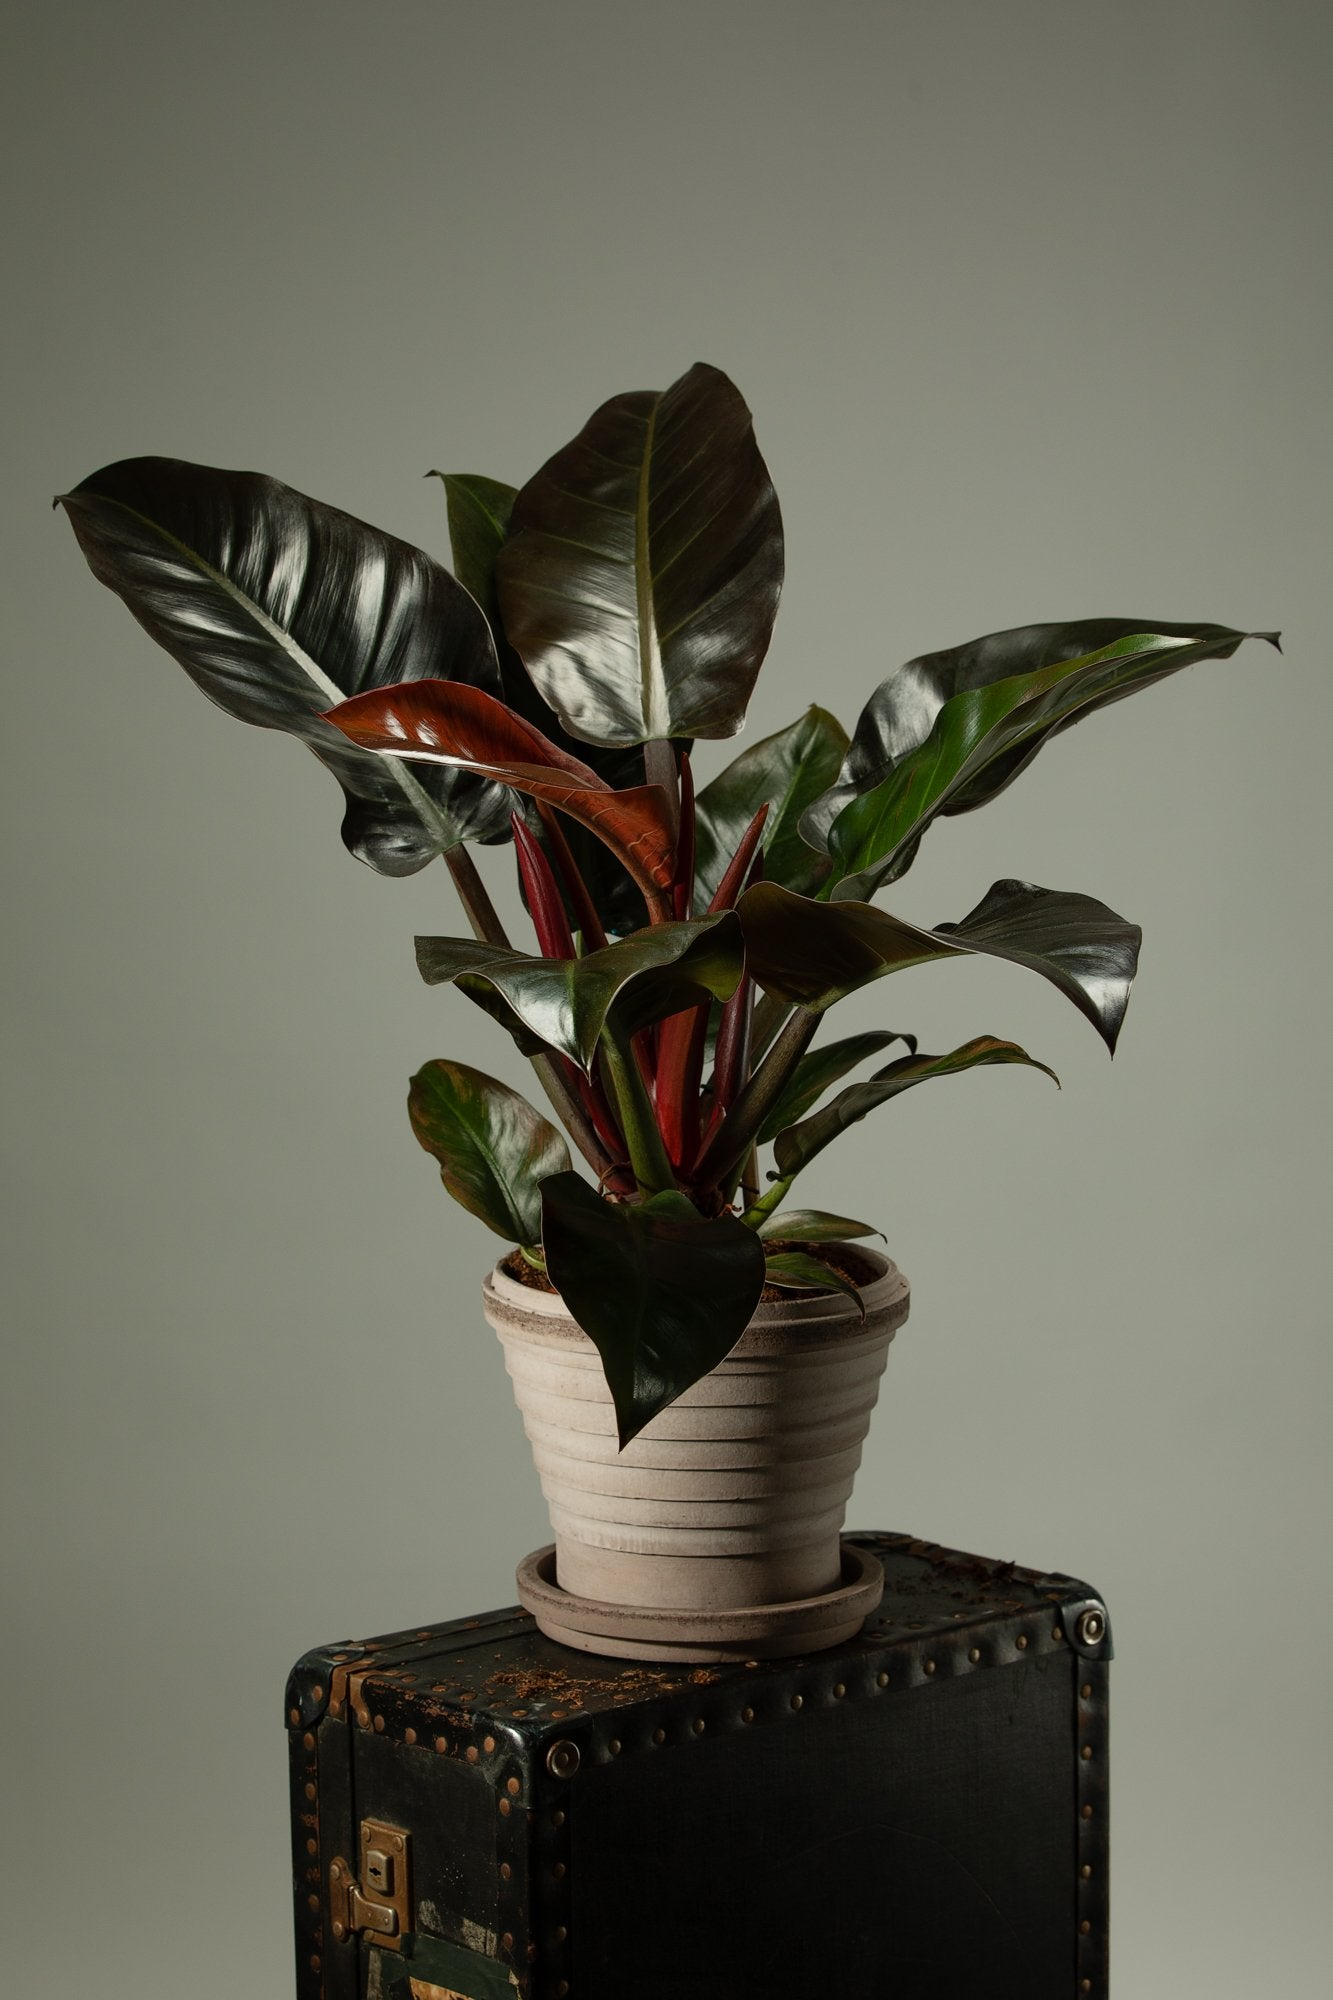 The beautiful Philodendron Imperial Red indoor plant in a Berg's Neptune handmade terracotta indoor pot.